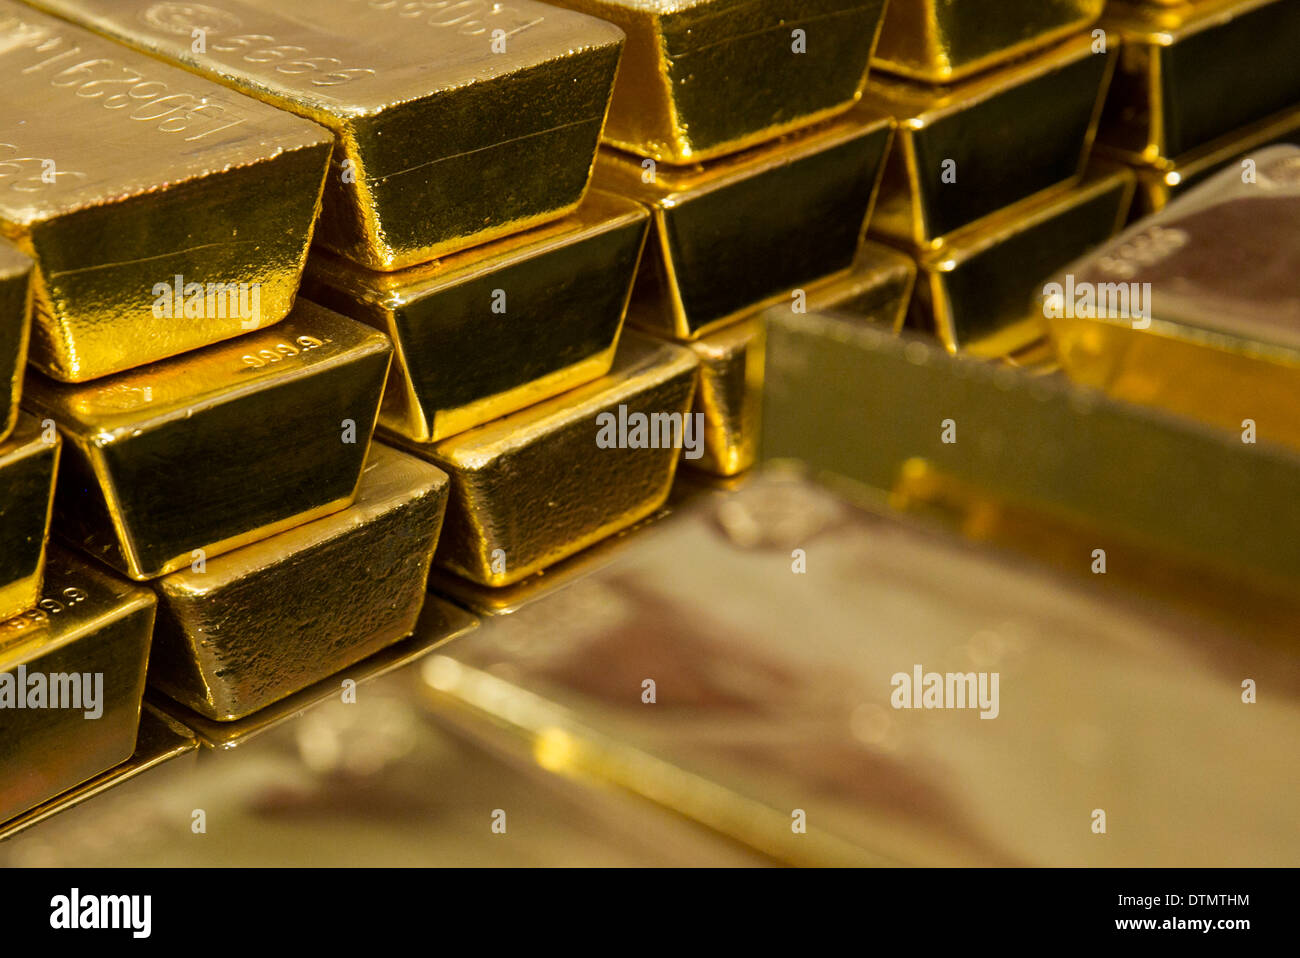 Bars of gold bullion owned by the U.S. Government at the West Point Mint. - Stock Image